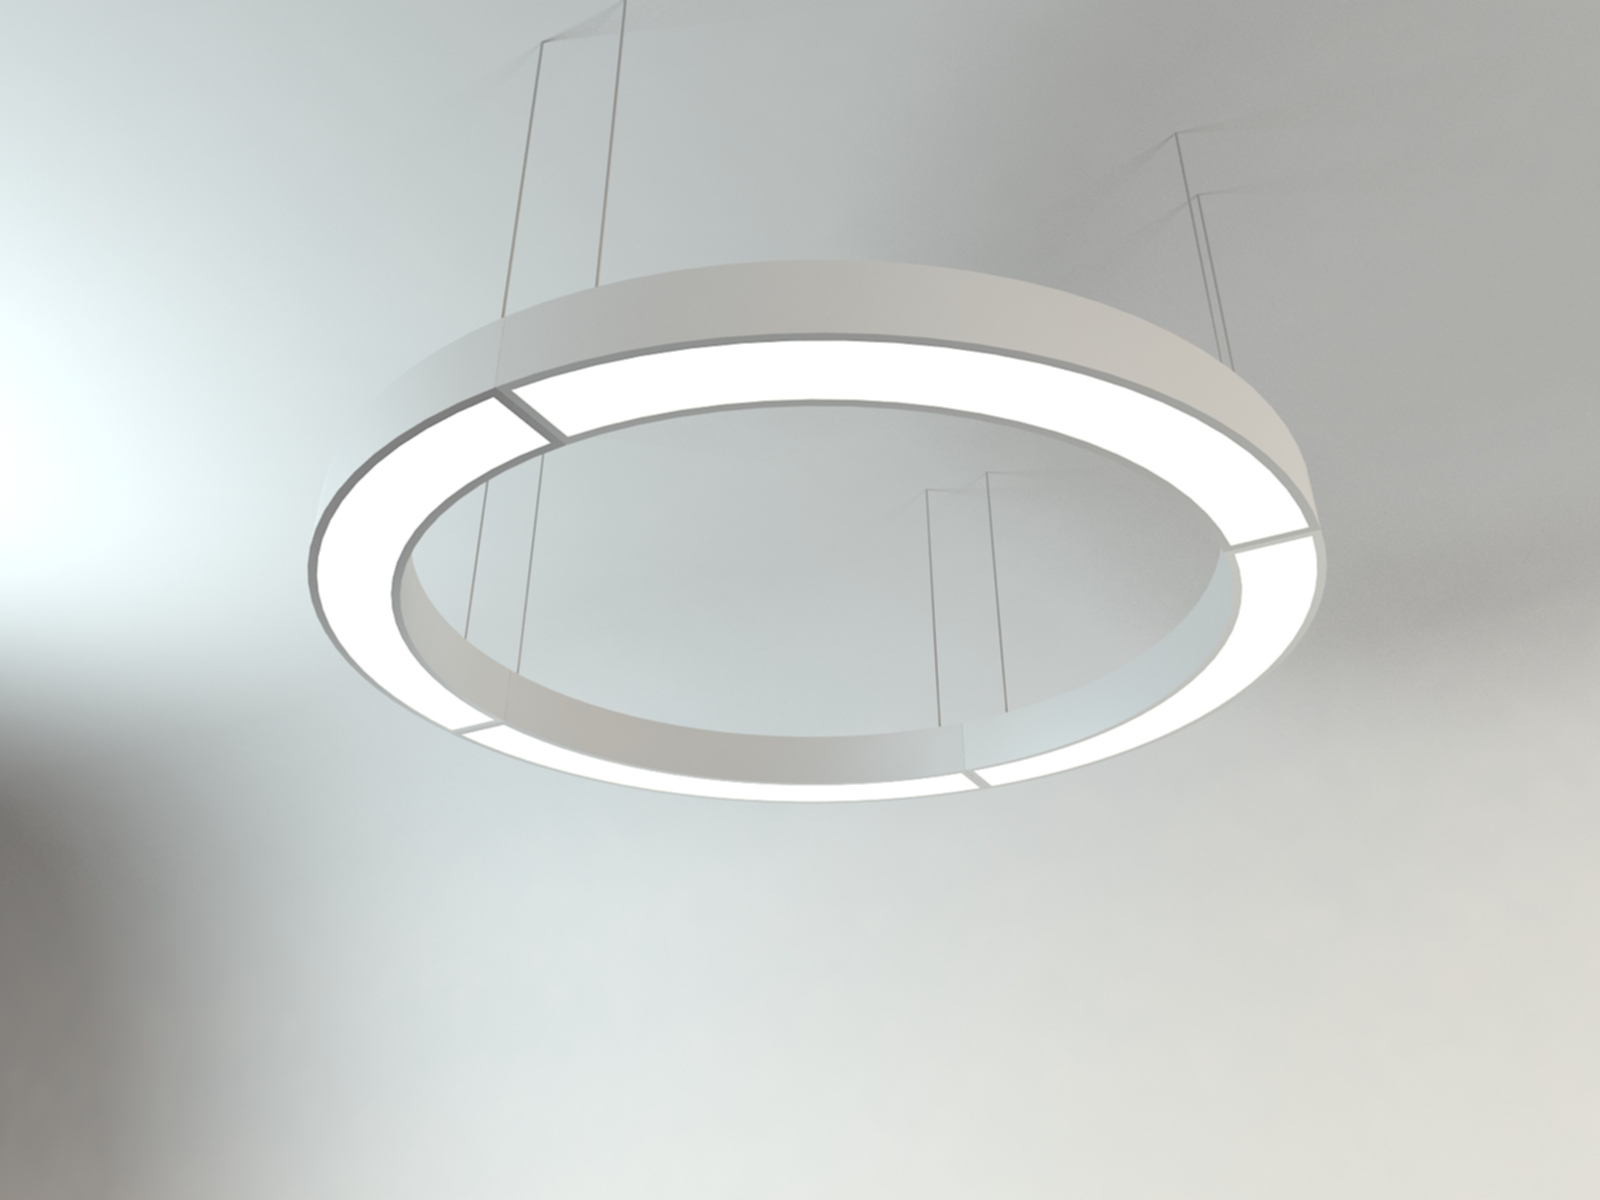 ARCHITECTURAL LIGHT - CIRCLE SERIES